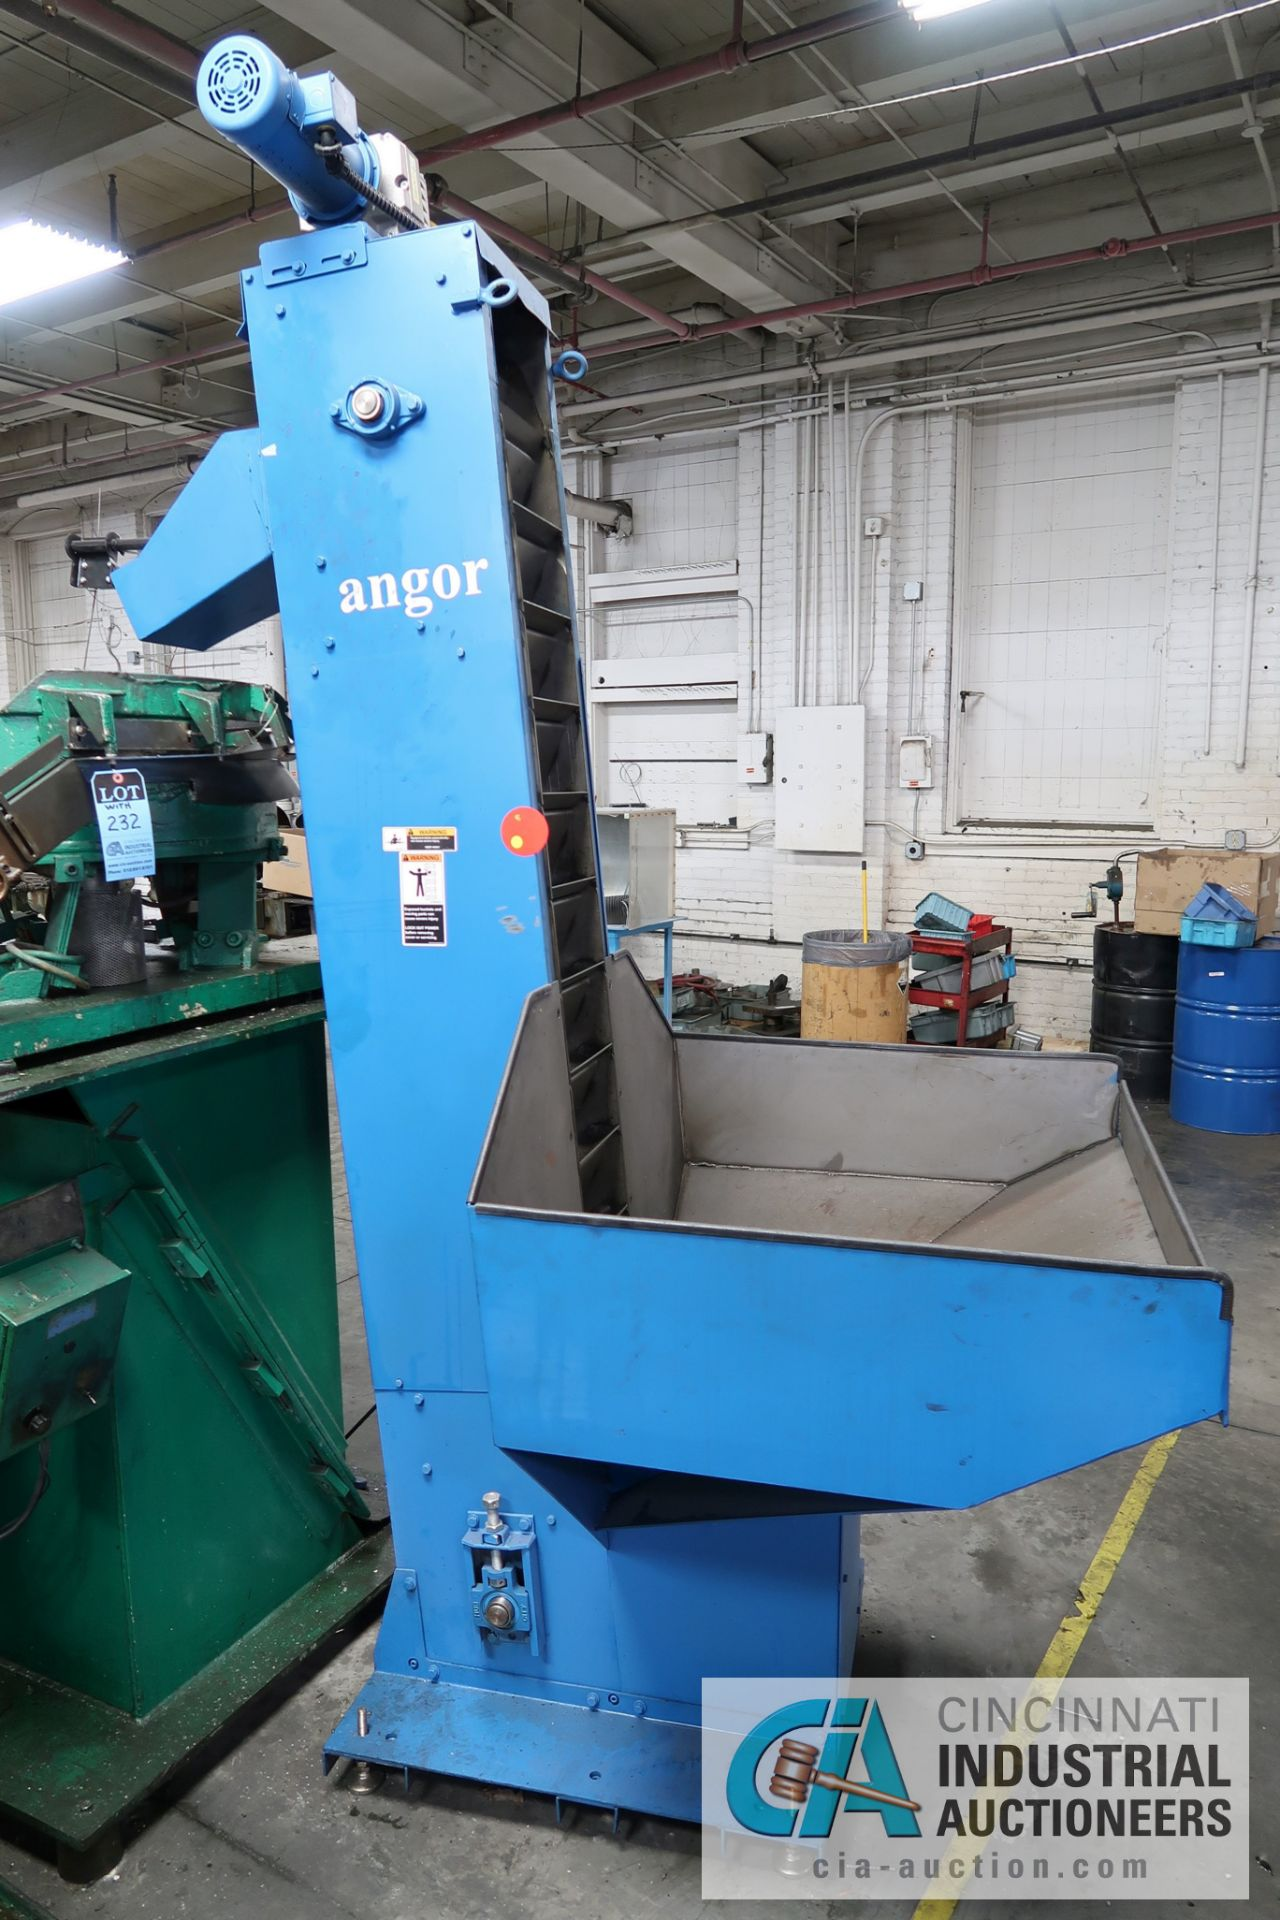 """10"""" X 78"""" ANGOR MODEL AMH600 SERIES BUCKET LOADER; S/N Z01728392, WITH PENTA-DRIVE DC MOTOR SPEED - Image 2 of 5"""